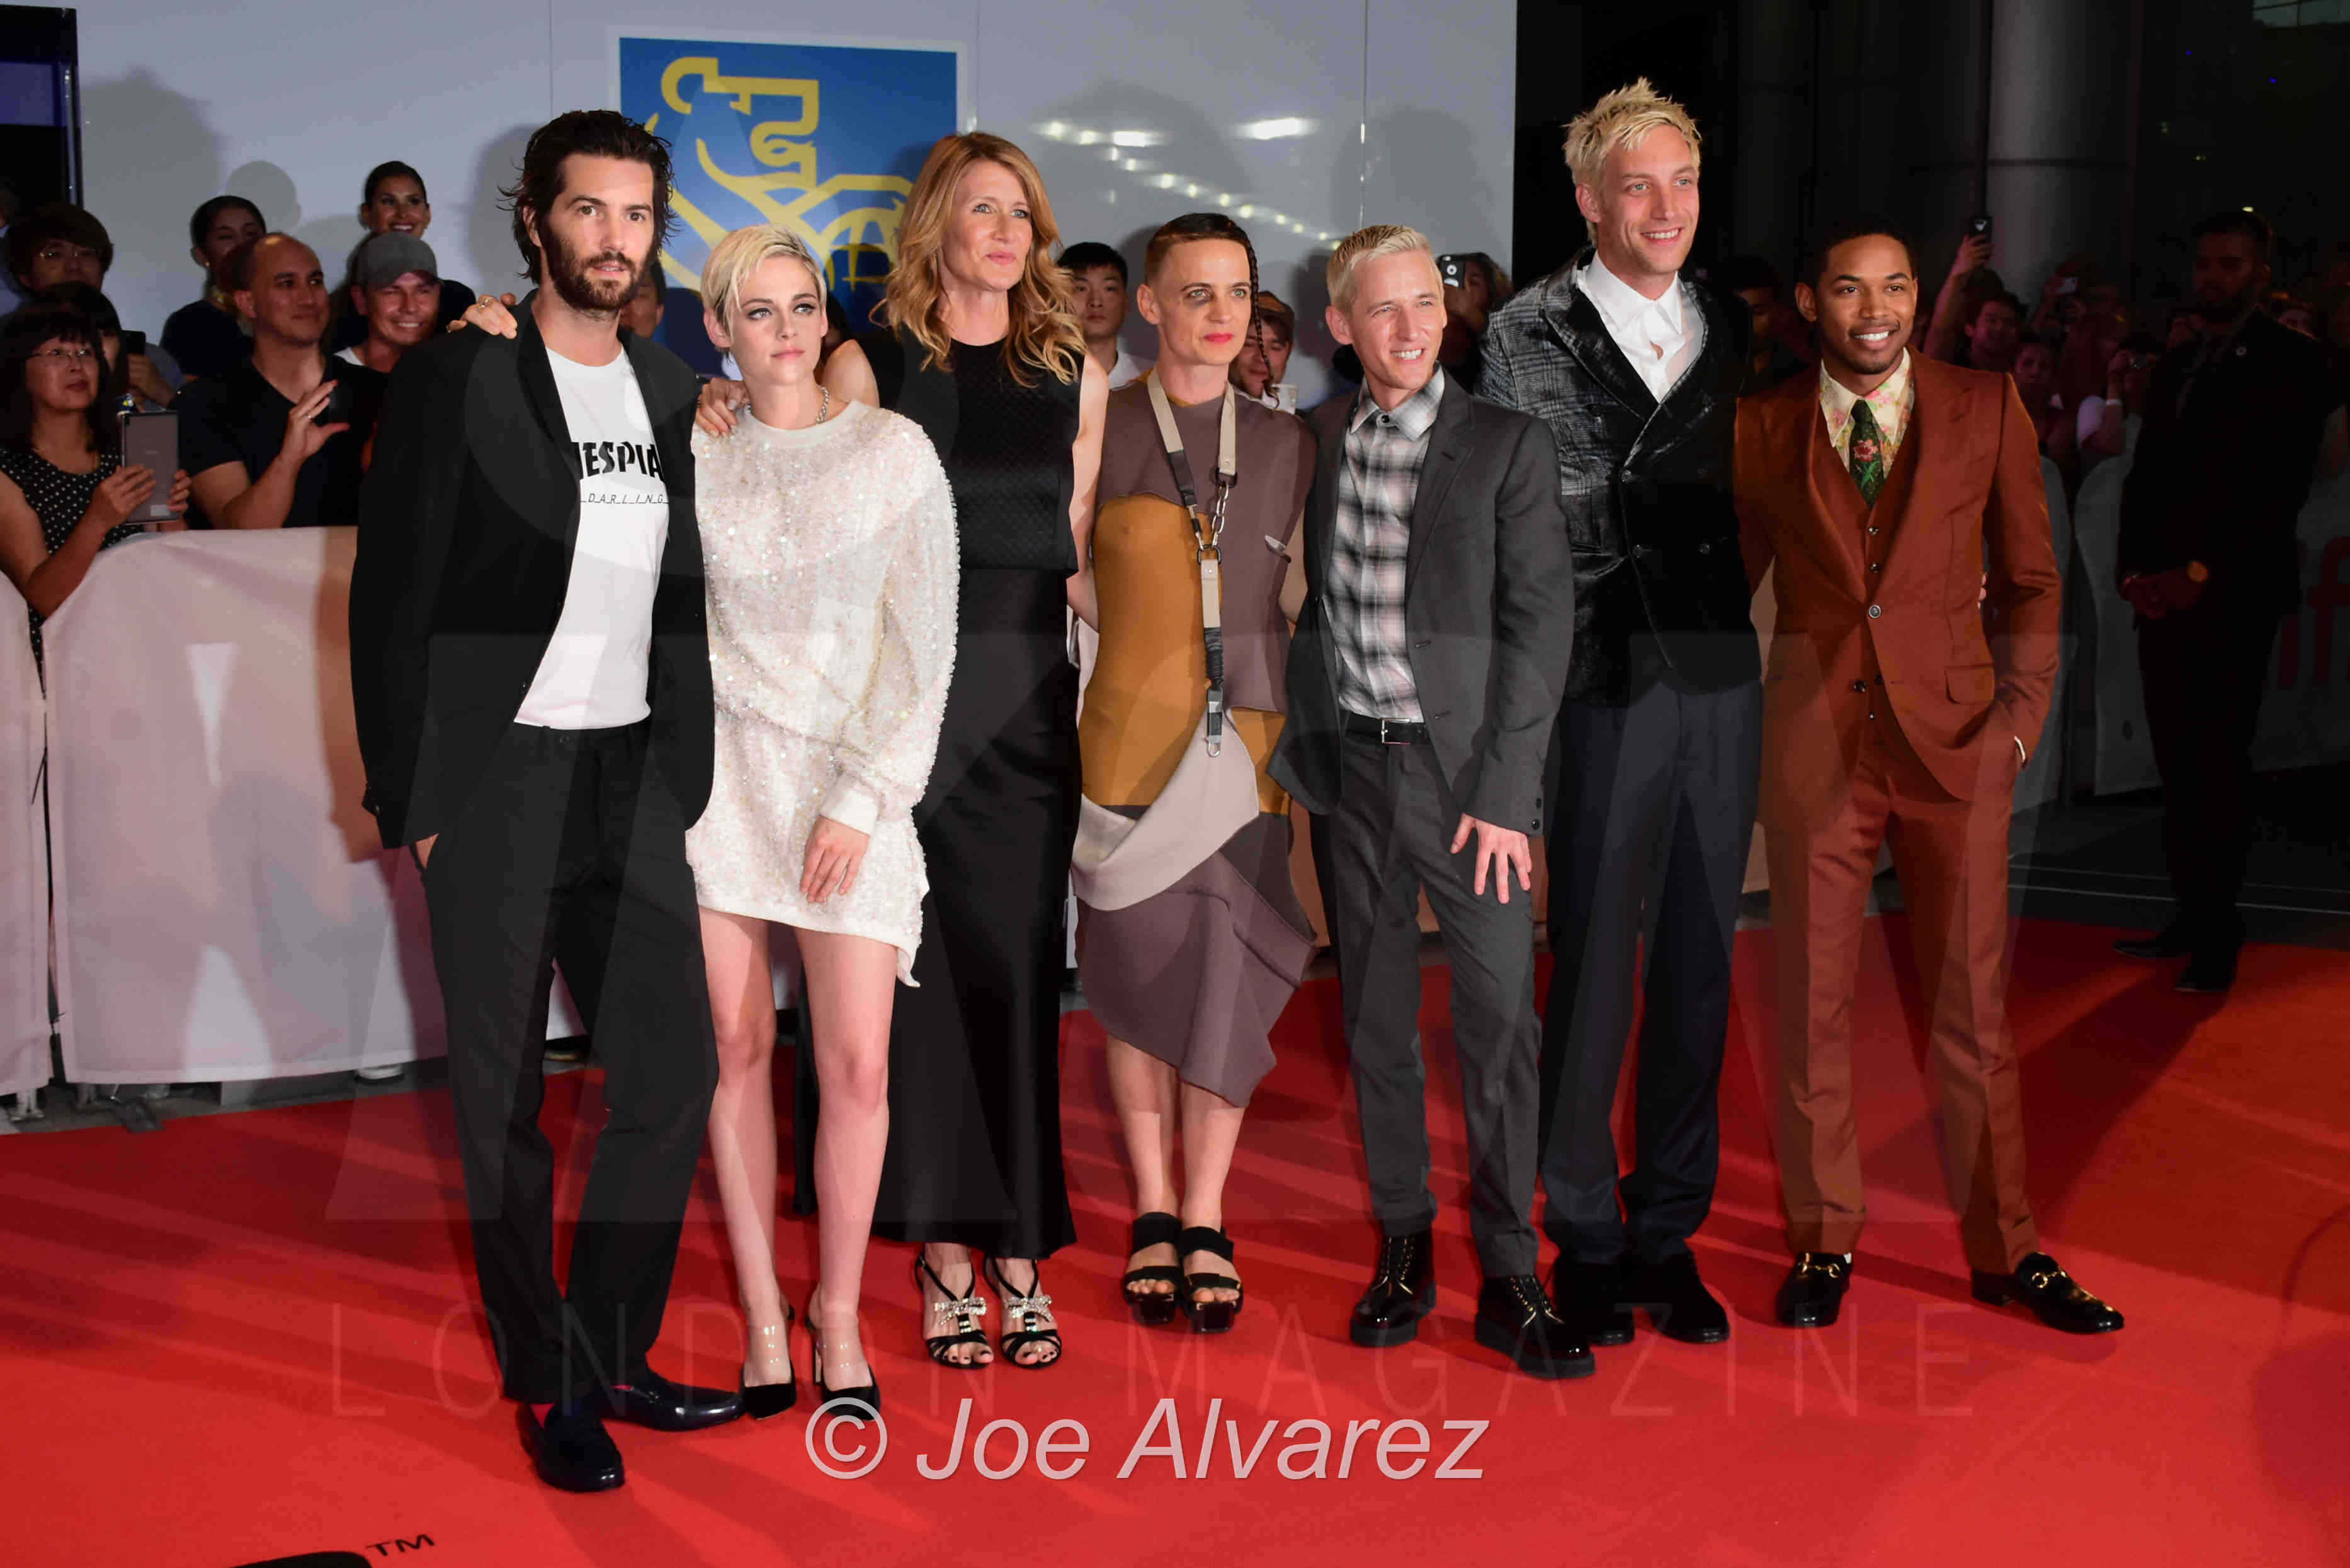 Cast of Jeremiah Terminator LeRoy © Joe Alvarez